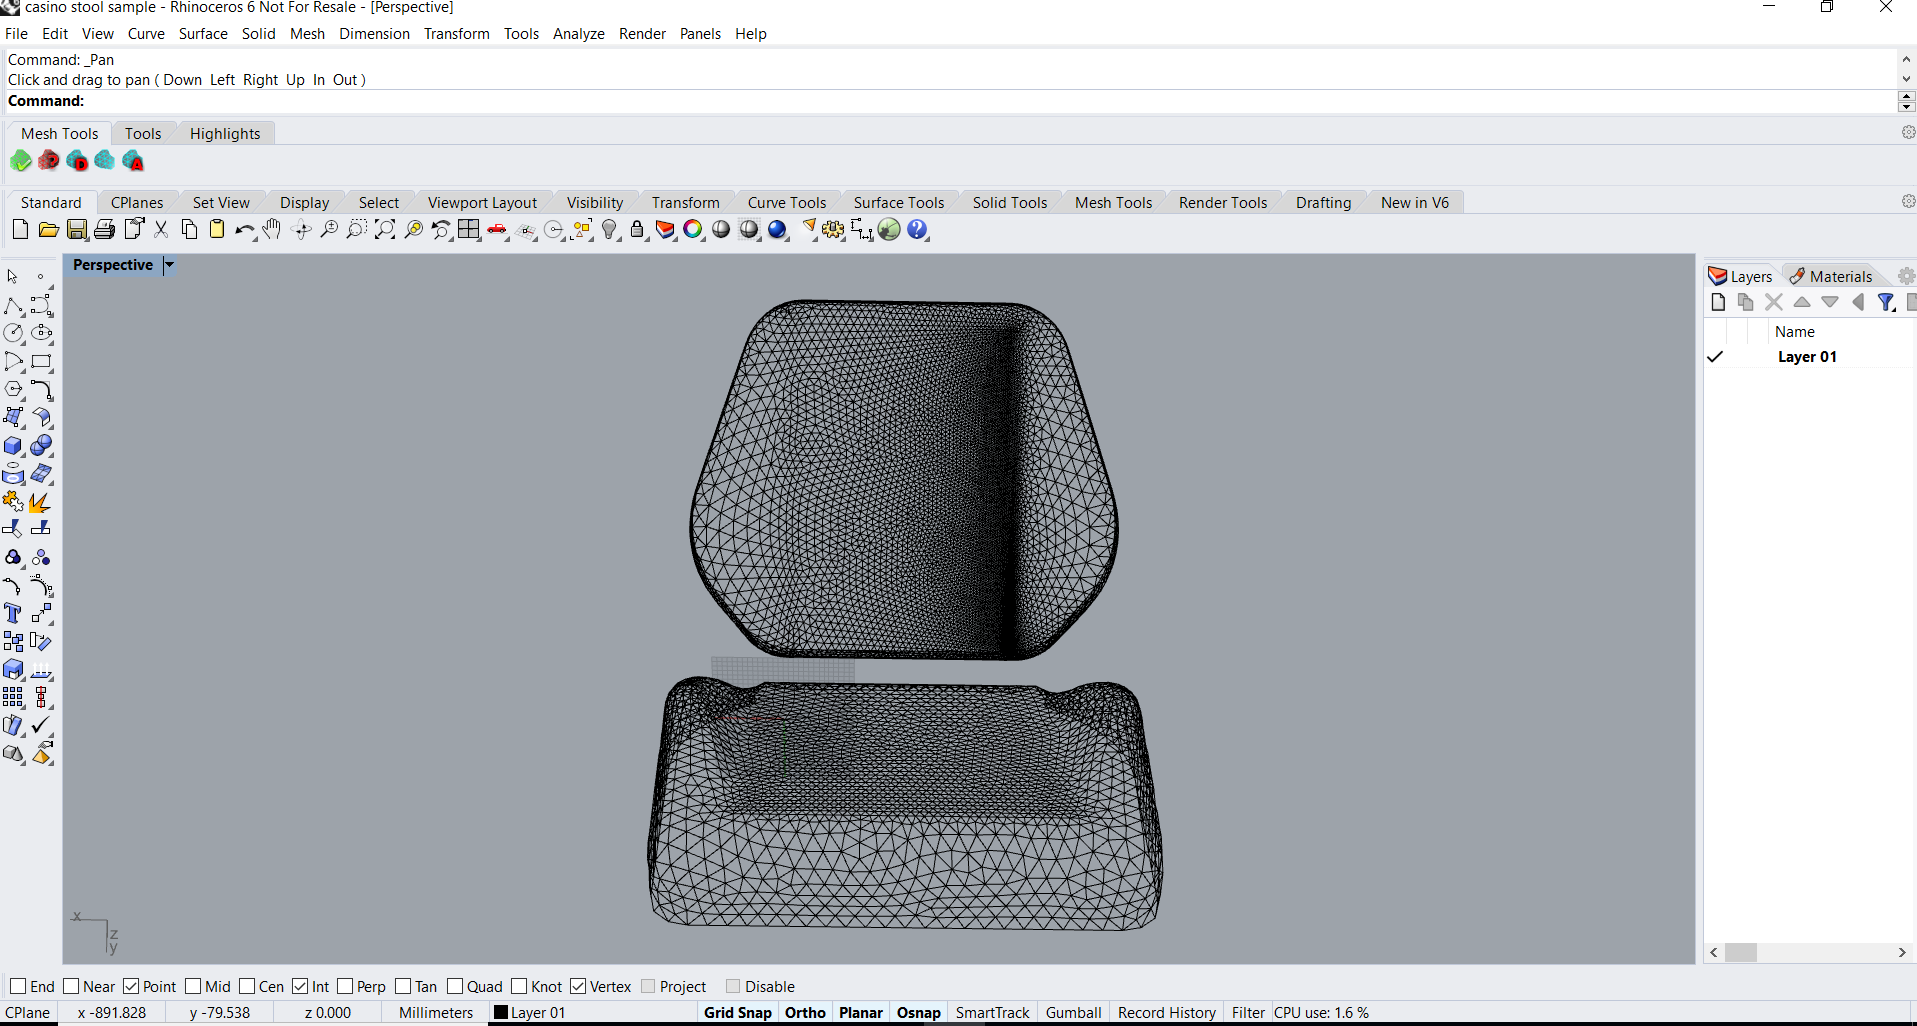 Reusing existing design is simple. Step 1 - Open the 3D Model. Step 2 - Edit the design and prepare for flattening.